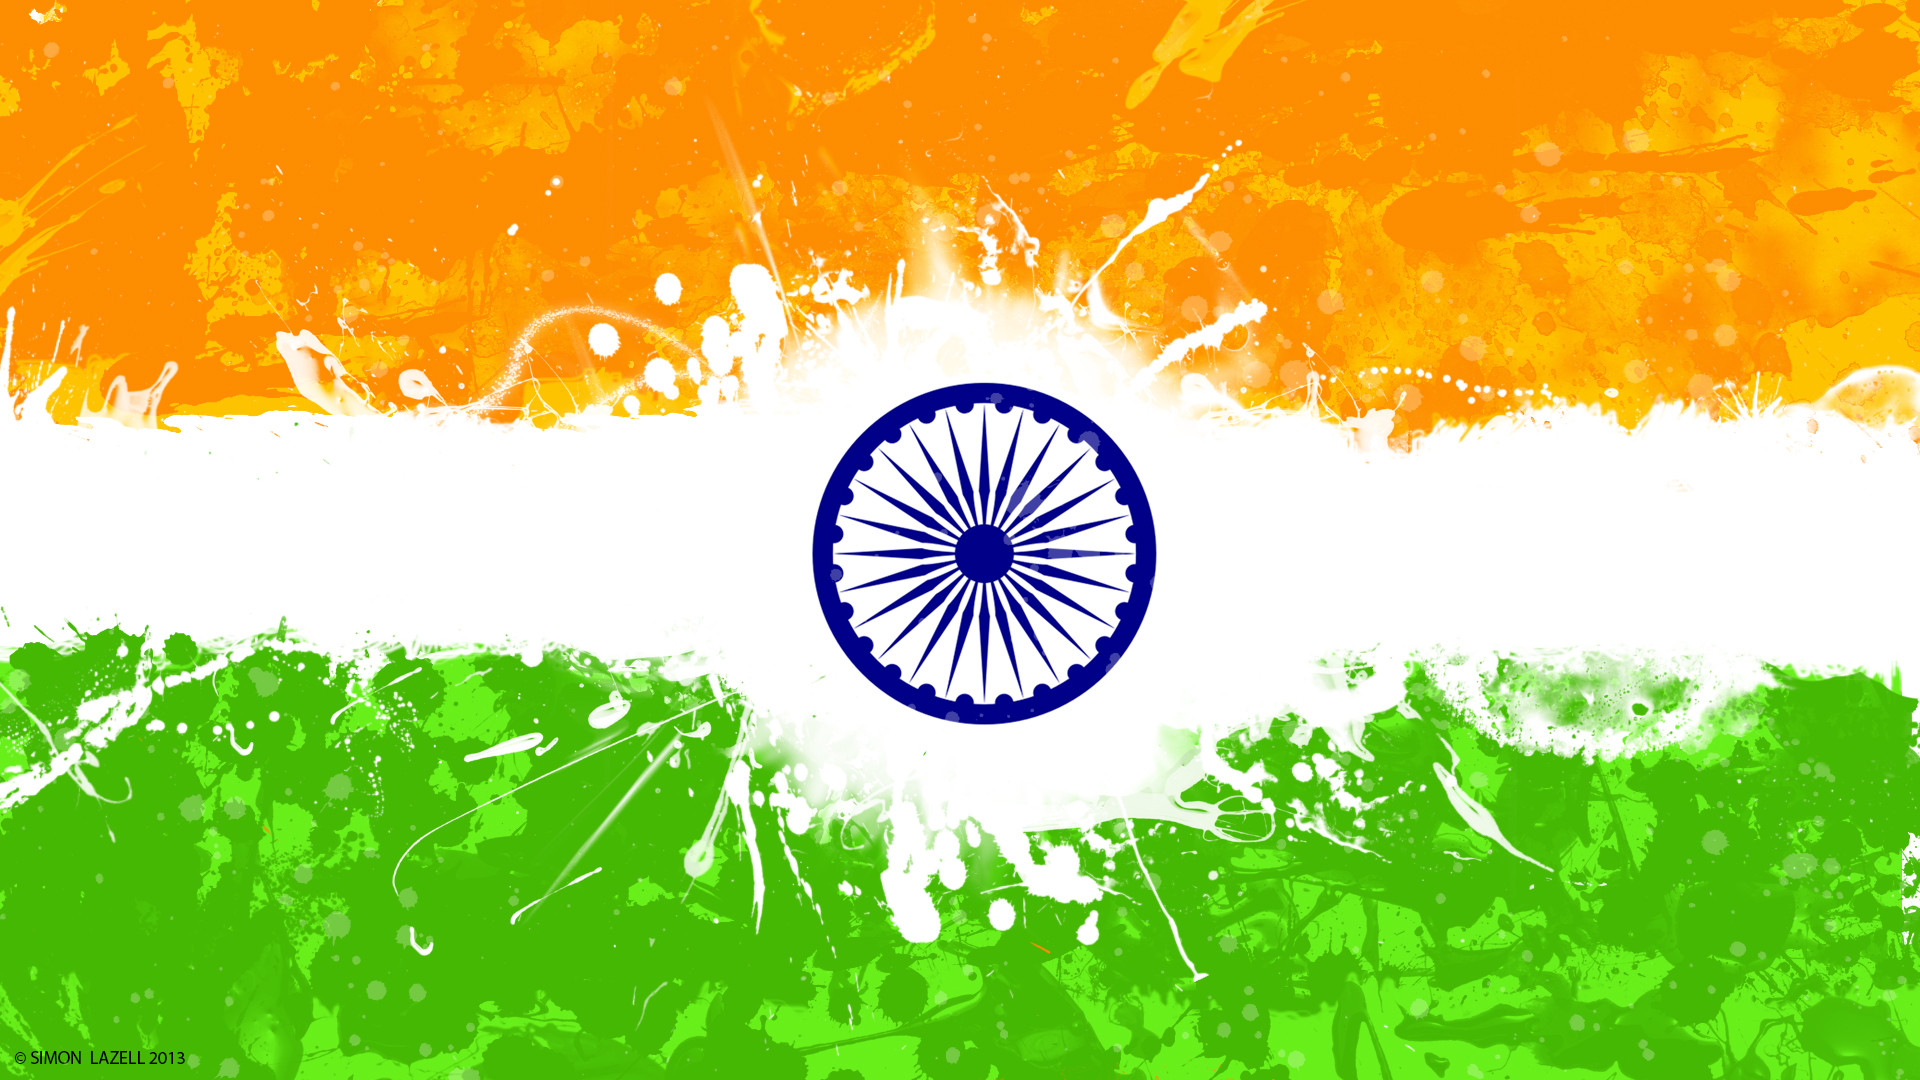 Indian flag wallpapers hd images 2018 free download for Student congress resolution template